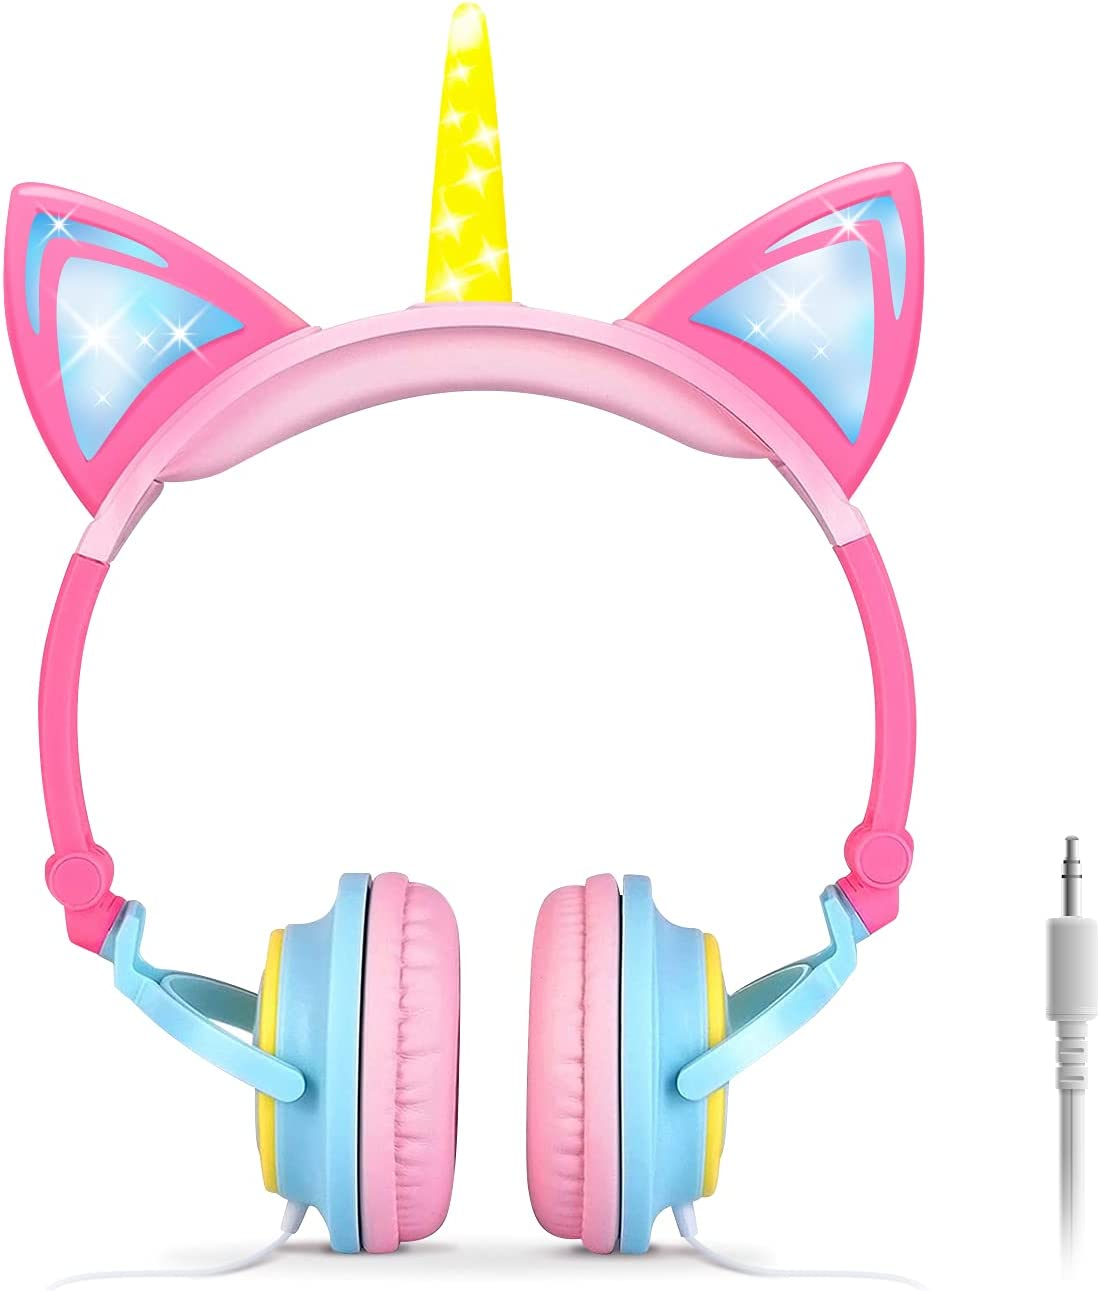 ONTA Kids Headphones,Unicorn Cat Ear Headphone LED Light Up Earphone Foldable Wired On-Ear Toddlers for Travel,Children/Boys/Girls Birthday Gifts,Superior Noise Isolation Ultra-Portable(Pink&Yellow)